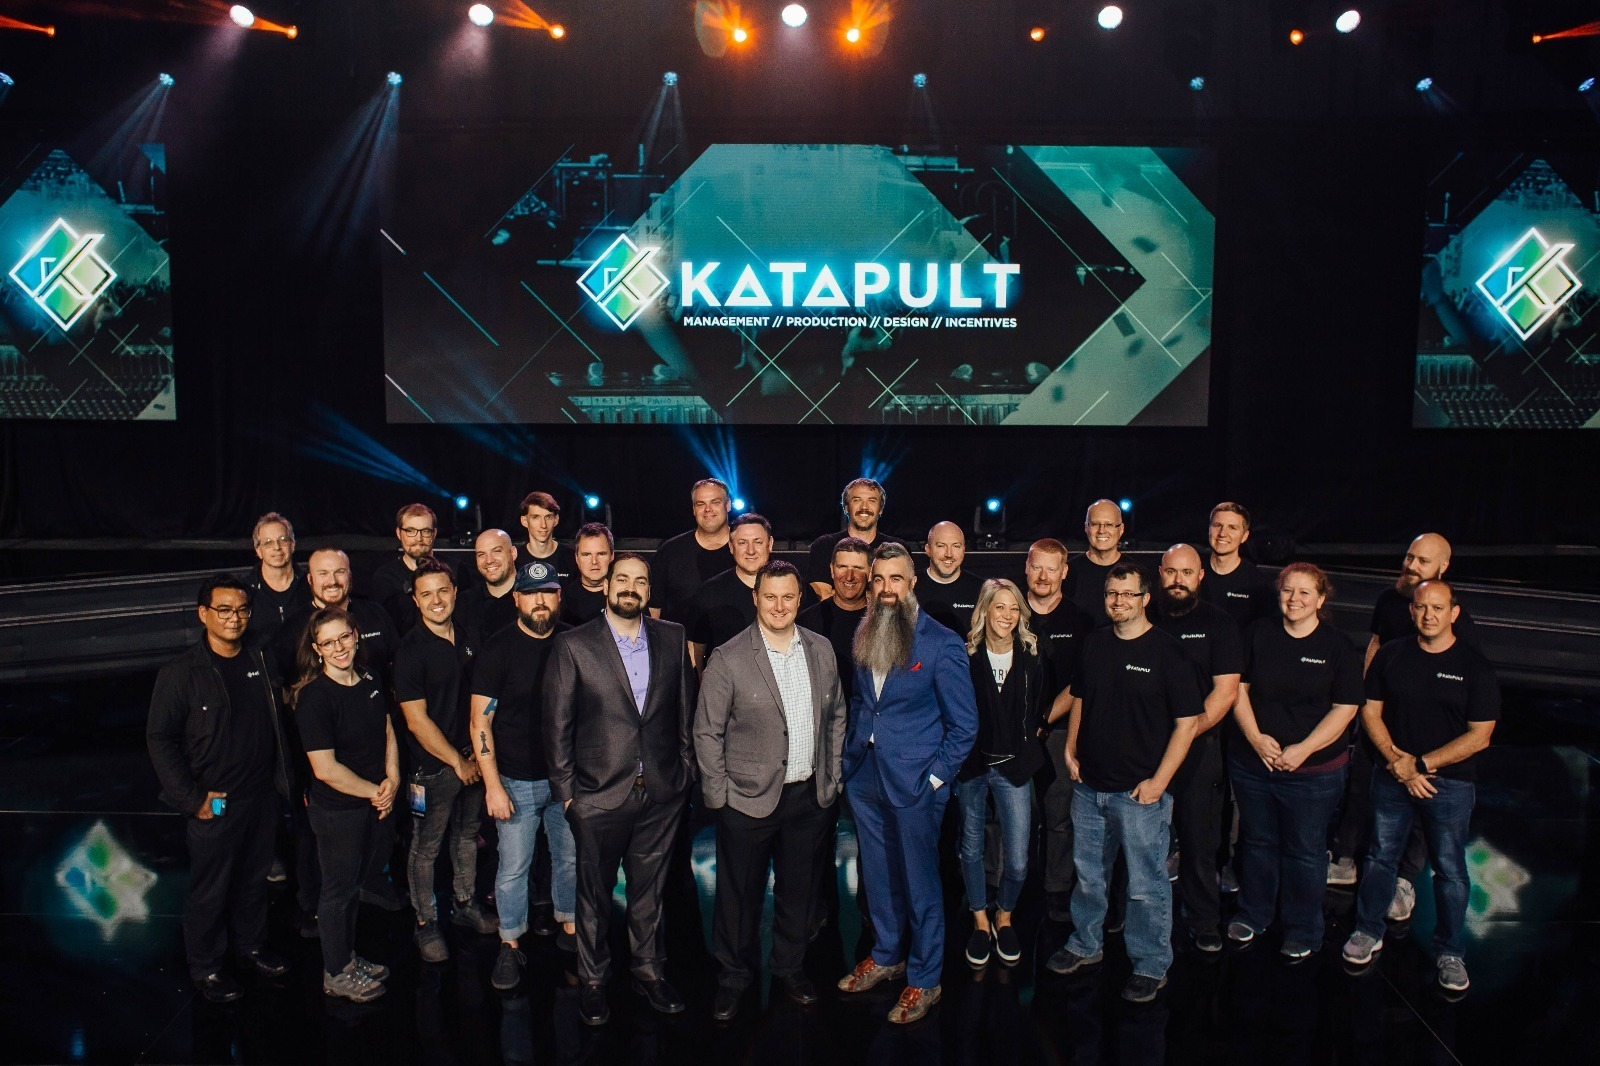 The Katapult Team